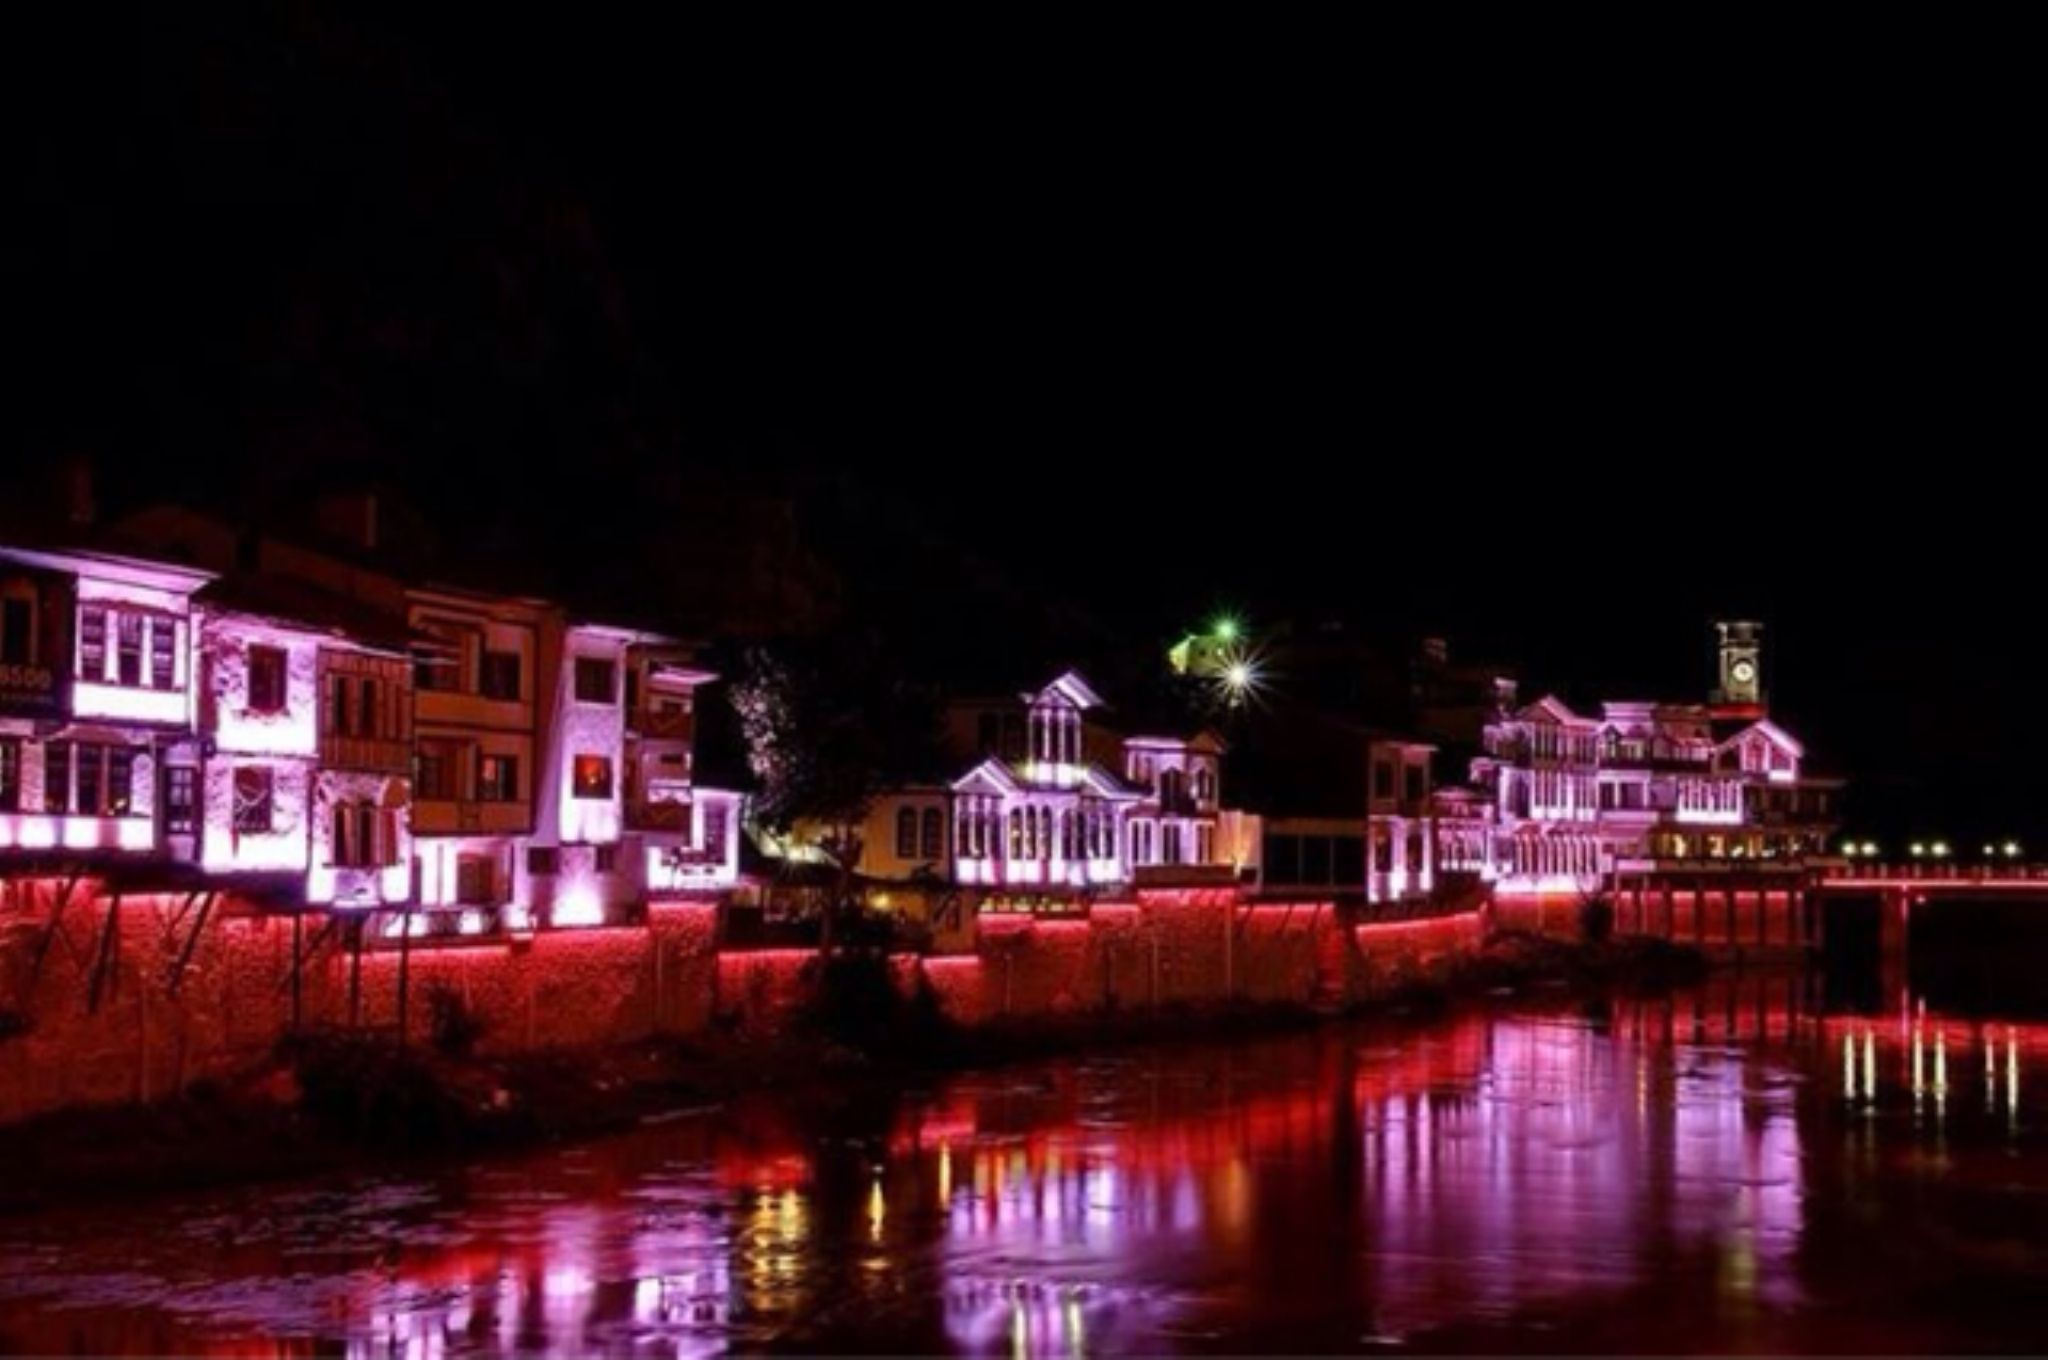 IMG_3475 by sitki_coskun